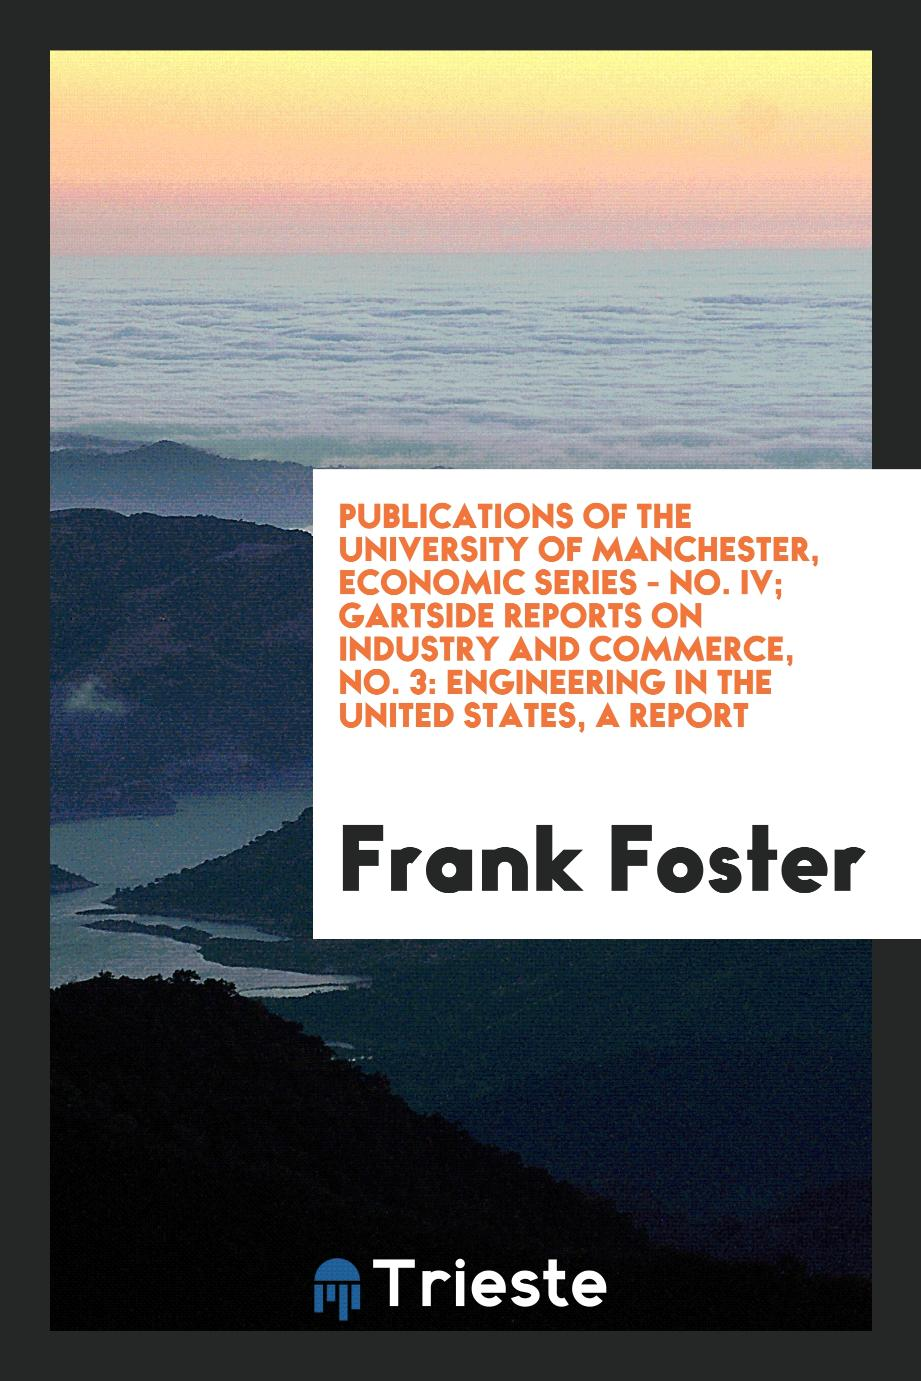 Publications of the University of Manchester, Economic Series - No. IV; Gartside Reports on Industry and Commerce, No. 3: Engineering in the United States, a Report